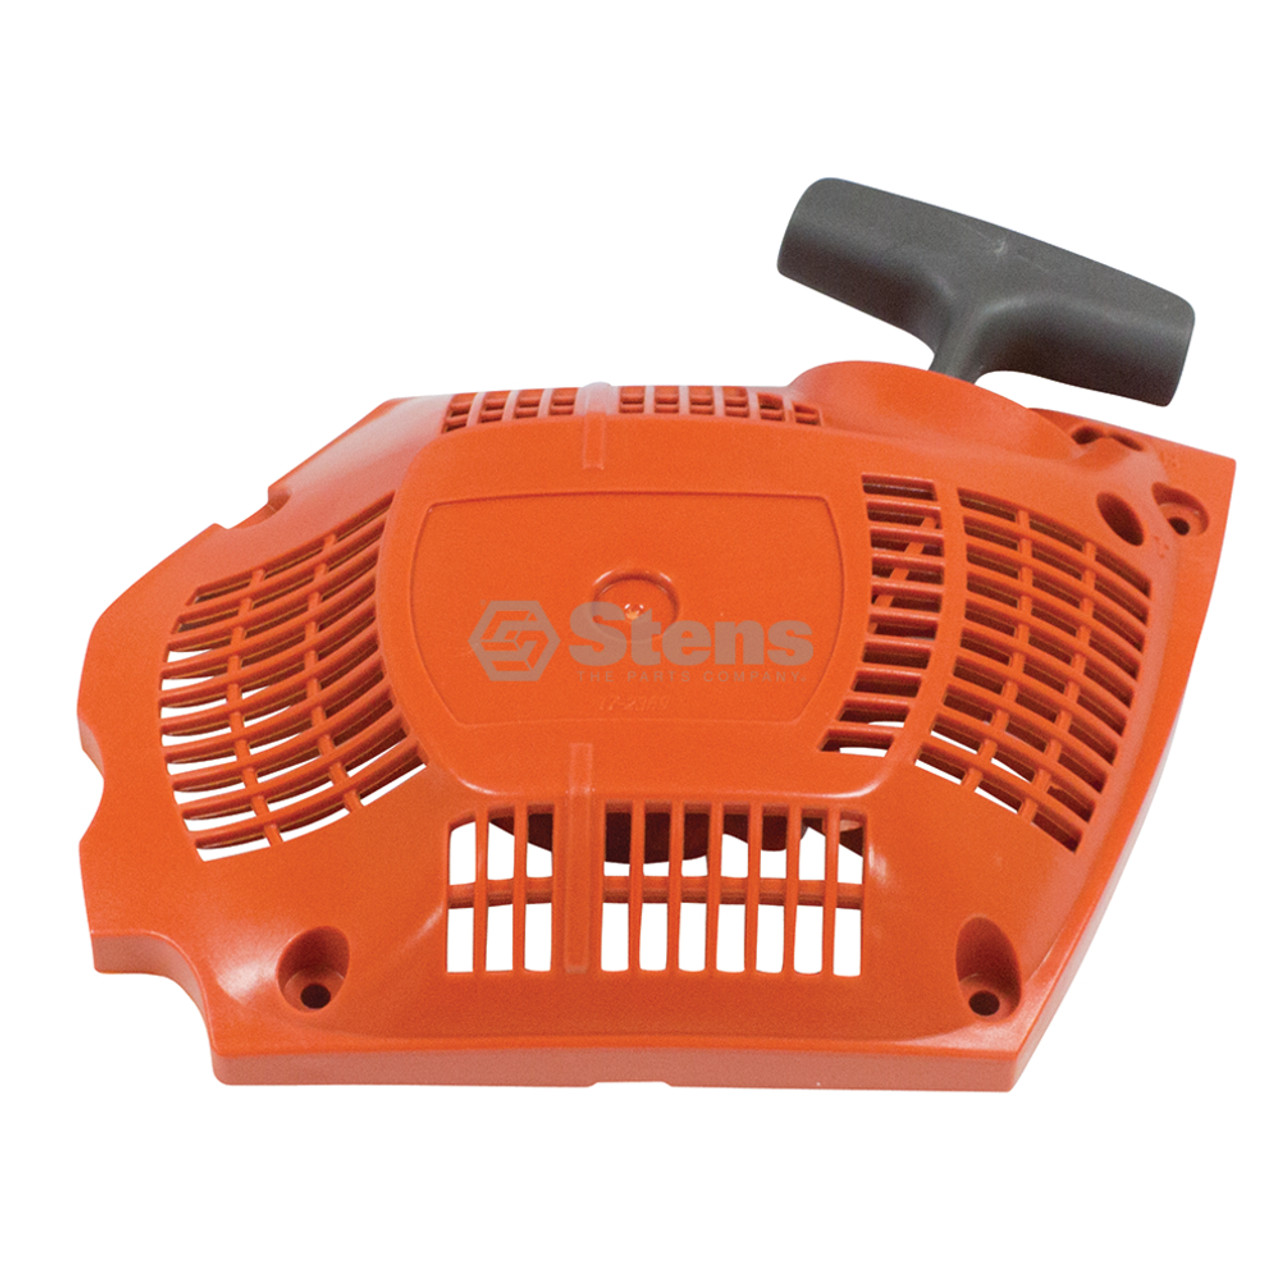 Starter for Husqvarna 455 Rancher, 460 and 461, 537284201, Chainsaw, chain  saw